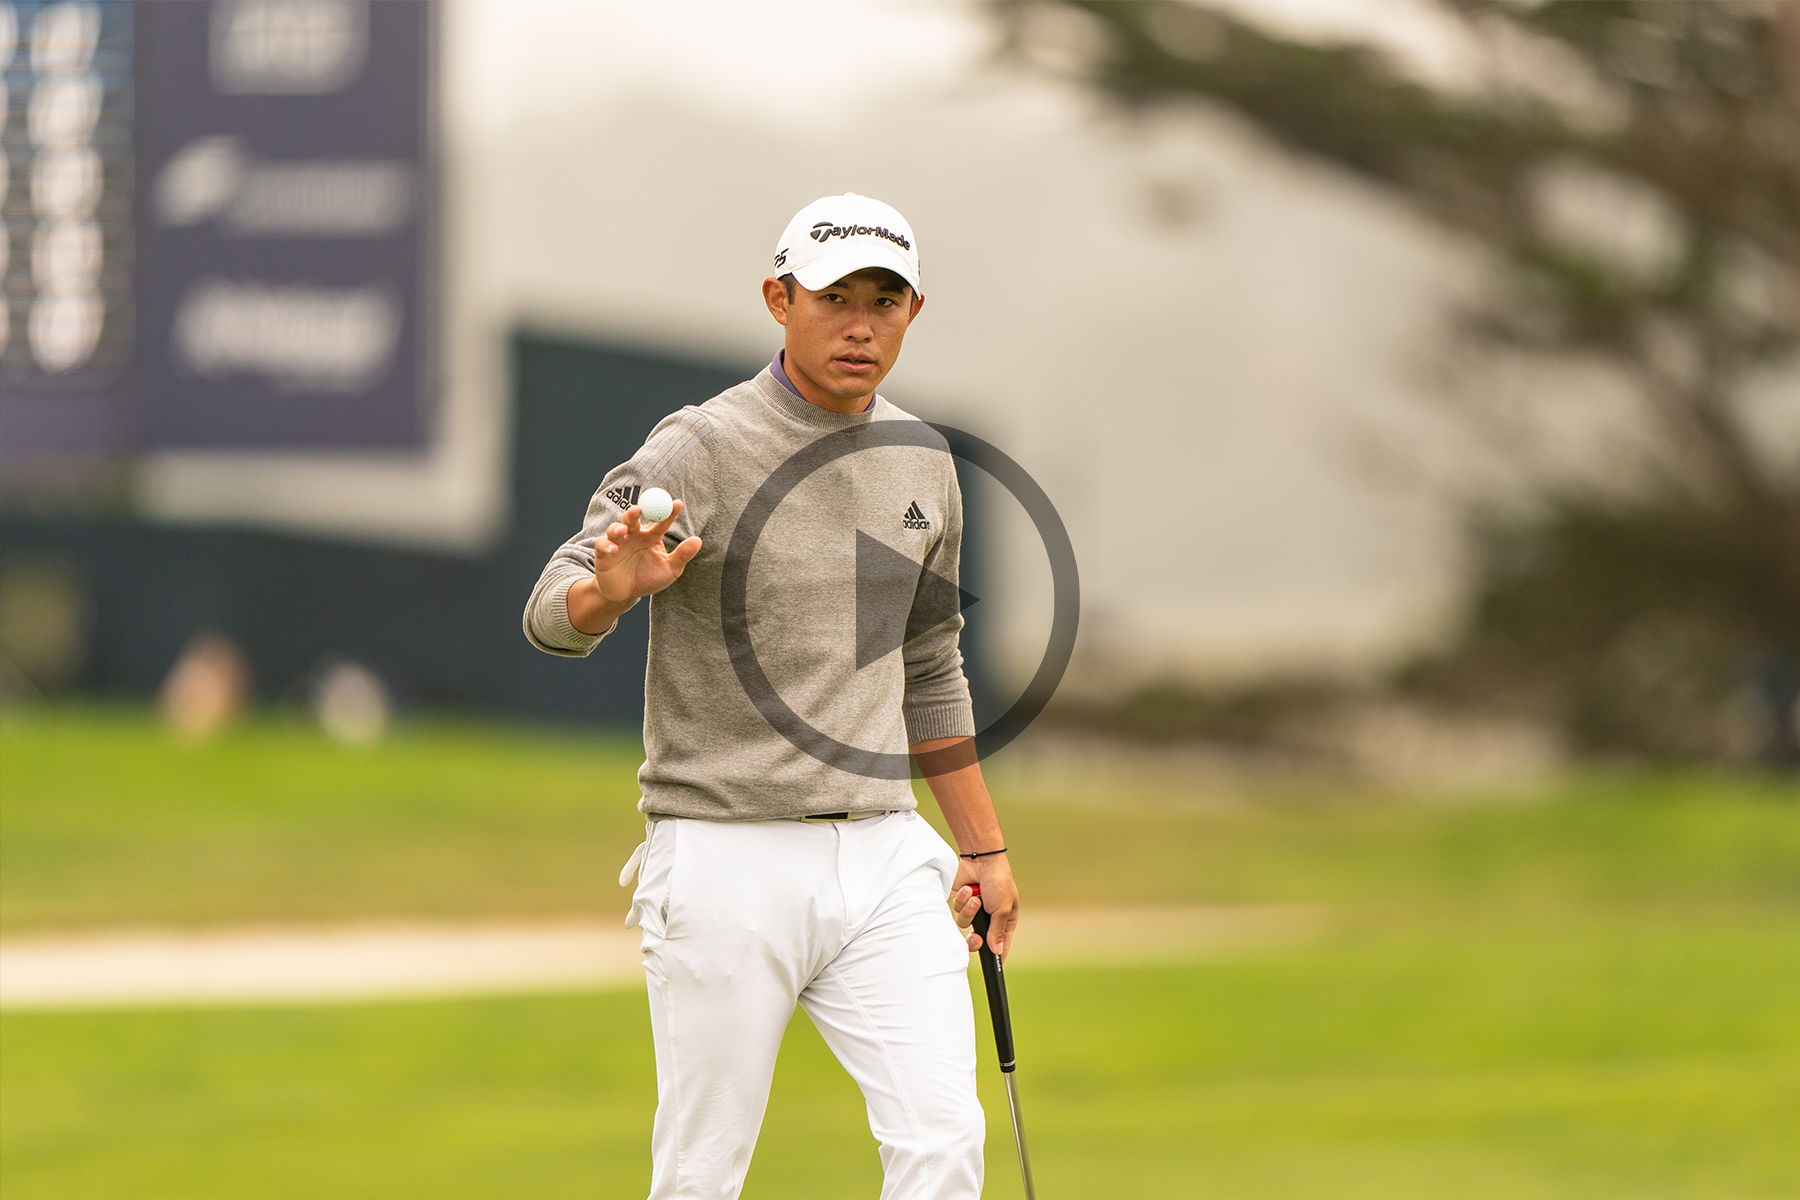 Collin Morikawa's Rise to Stardom Came with a PGA Coach By His Side